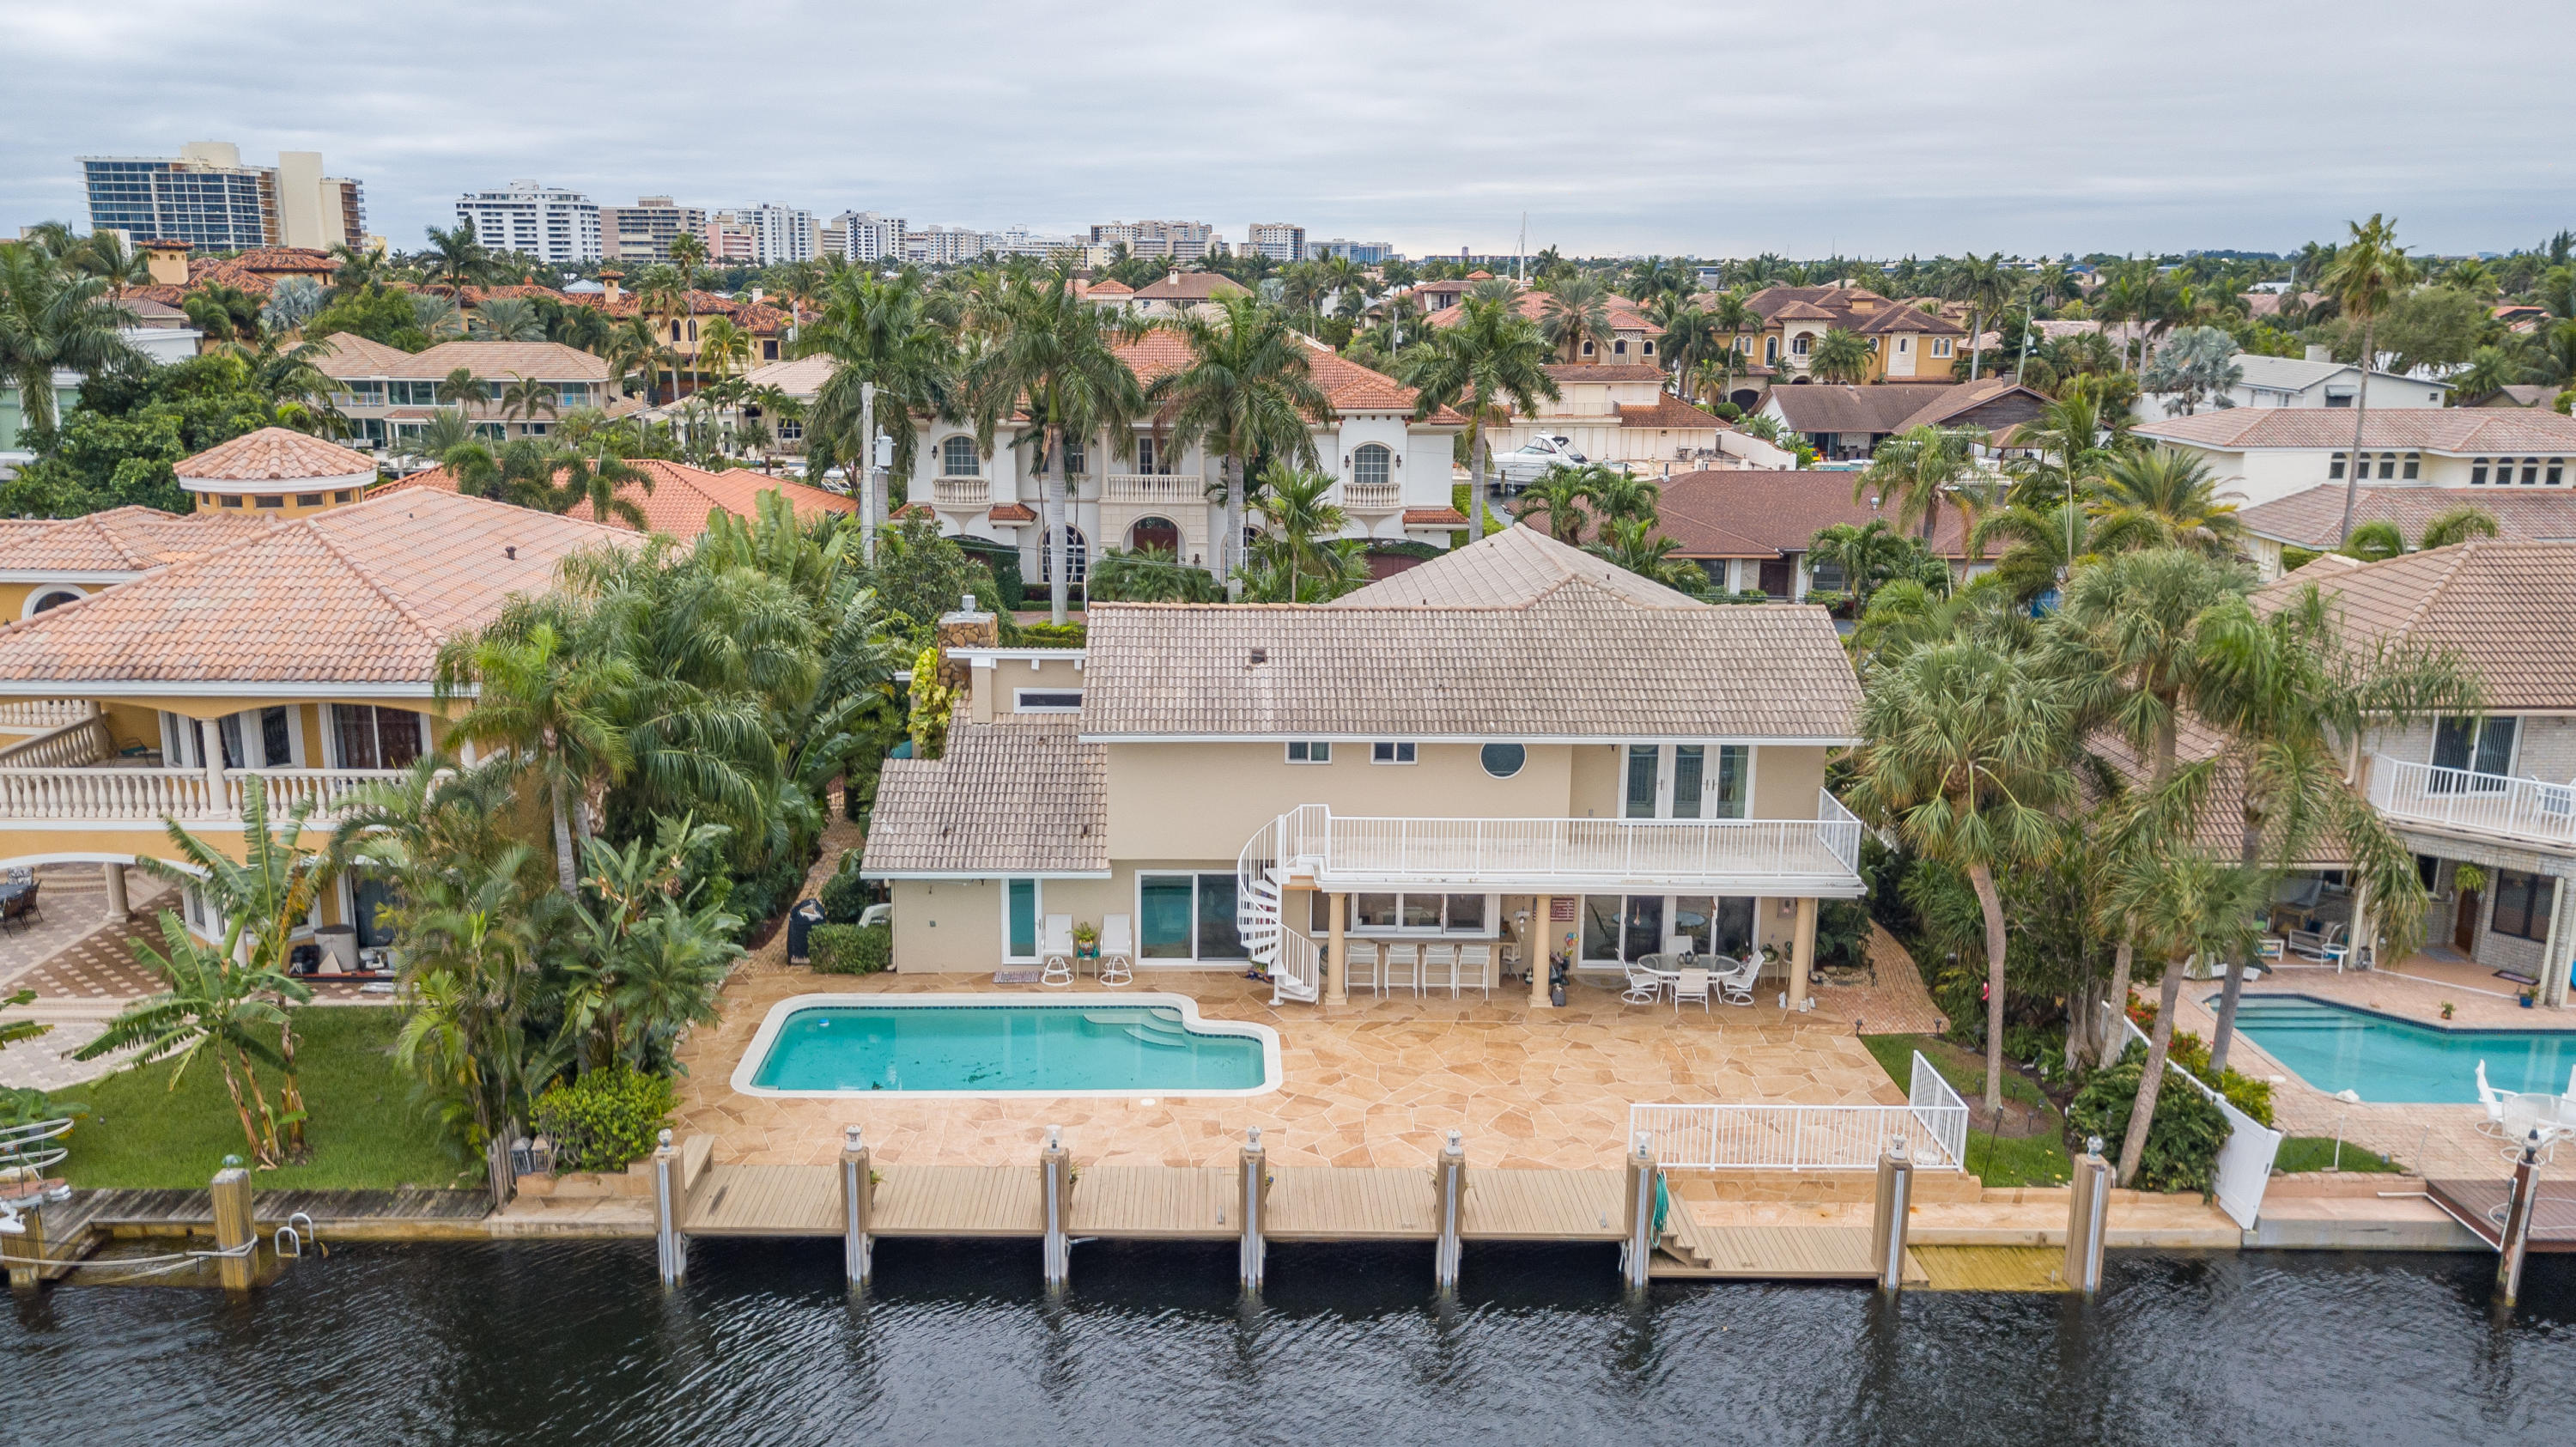 Welcome Home to Tropic Isle, Delray Beach's prestigious intracoastal community just minutes to trend